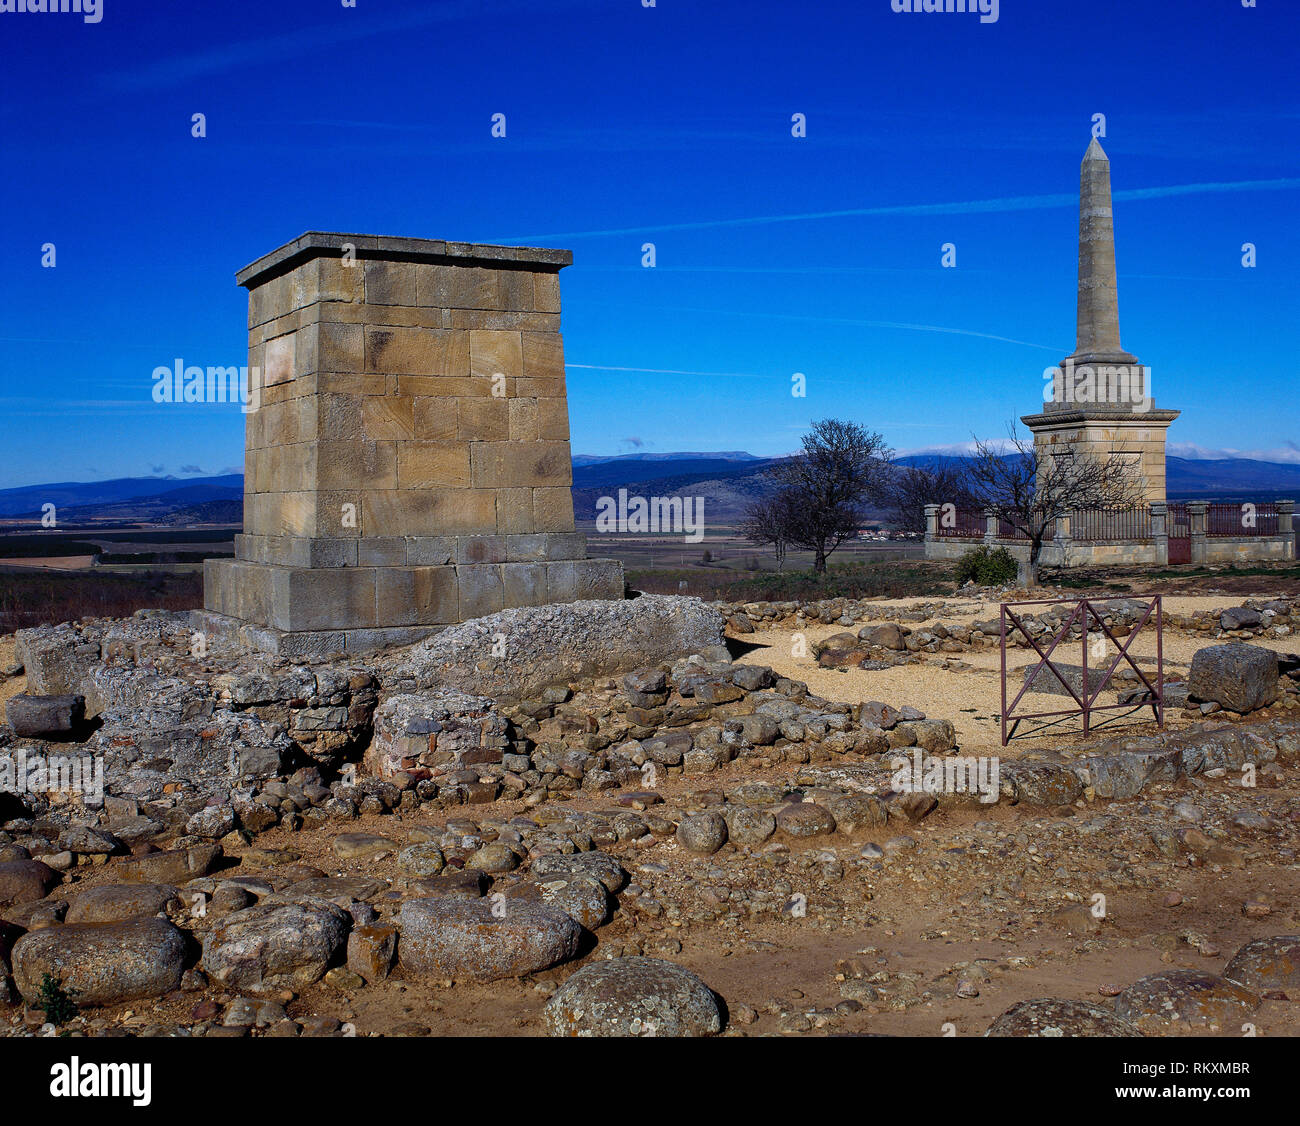 Spain. Numantia. Ancient Celtiberian town conquested by the Romans in 133 BC, during the Celtiberian Wars. It was abandoned in the 4th century AD. Ruins and the monolith of homage to the city, built by the Economic Society. Garray, province of Soria, Castile and Leon. - Stock Image